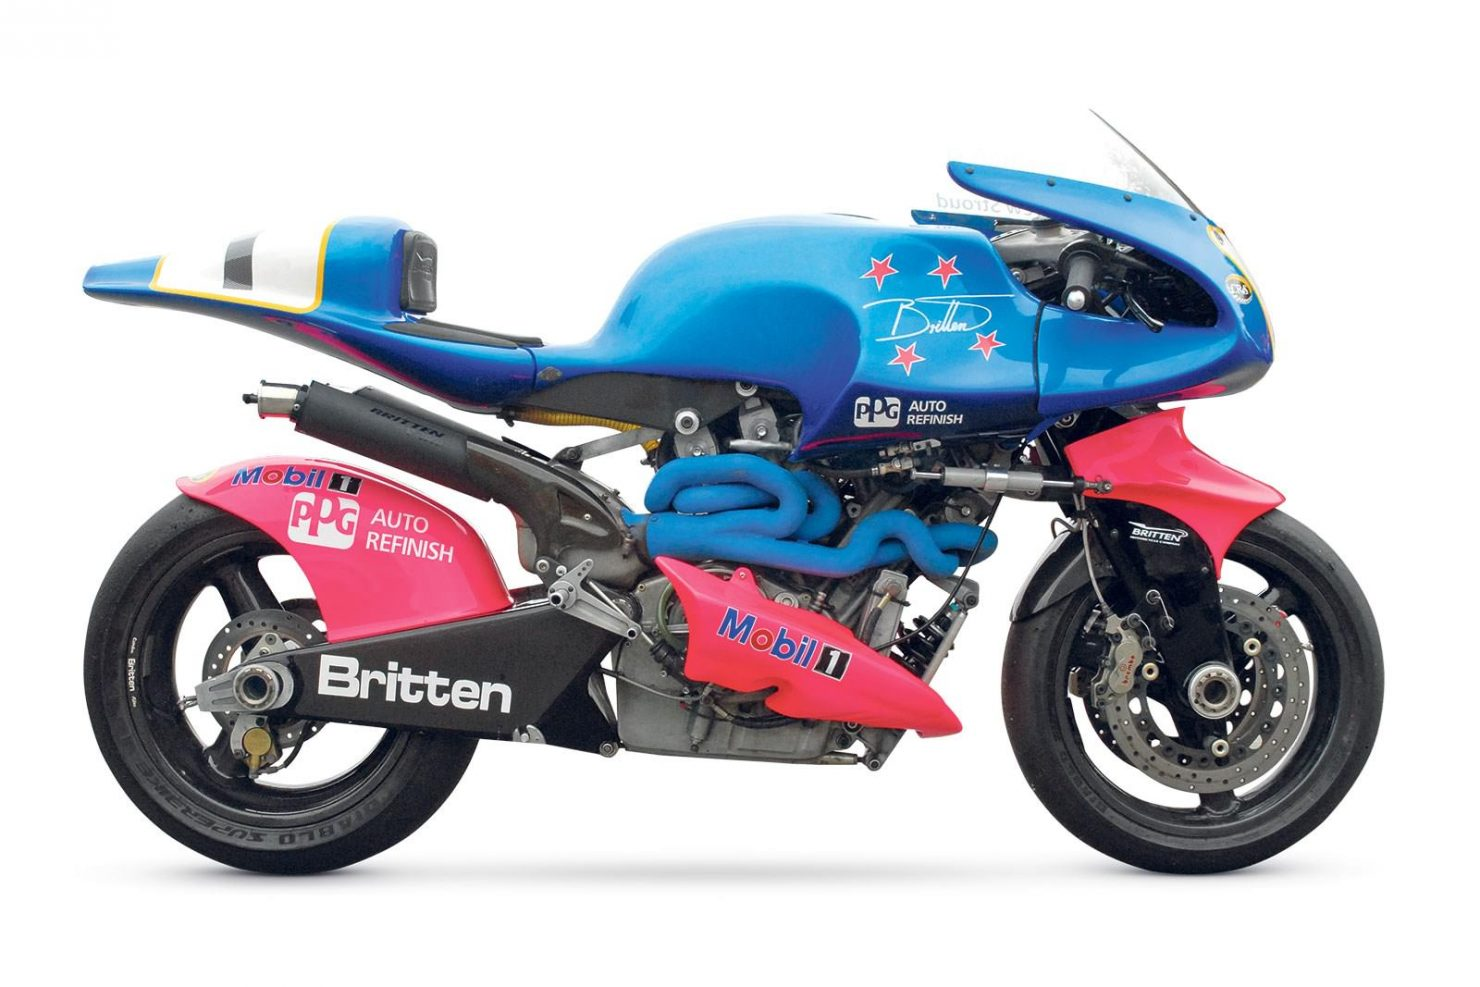 John Britten V1000 1480x987 - Britten - Return to The Island